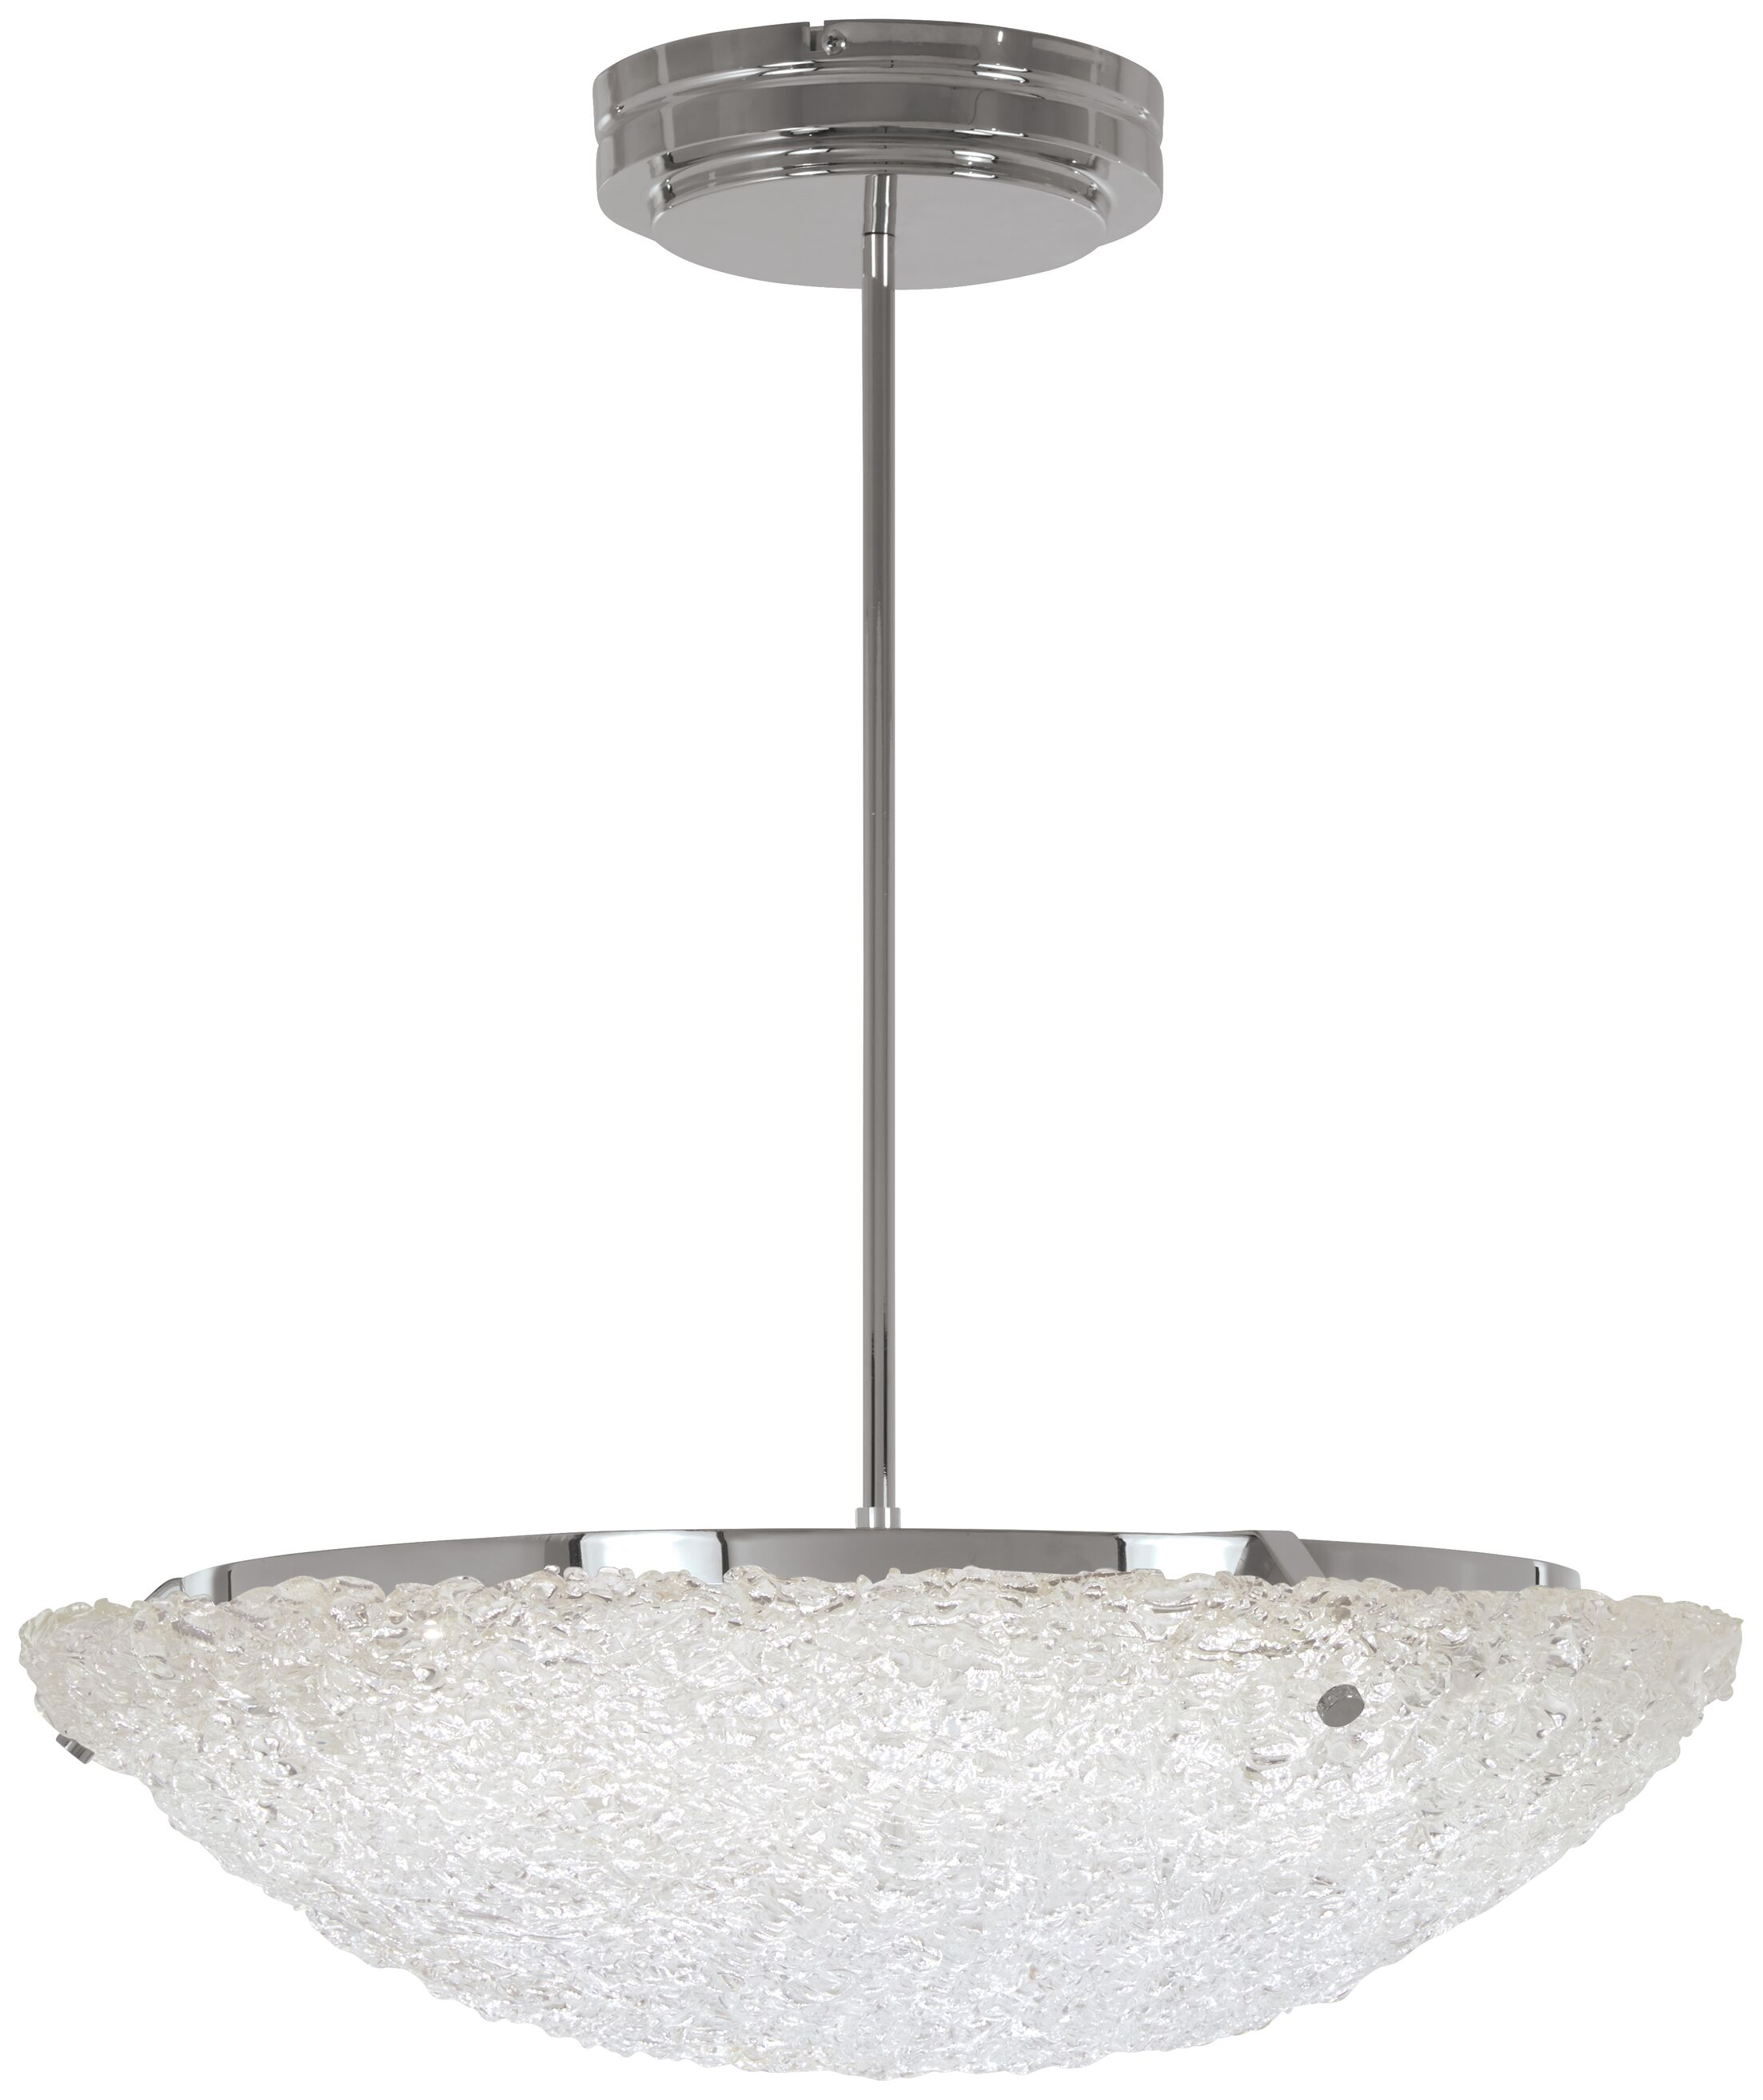 Glatt 1-Light Bowl Pendant